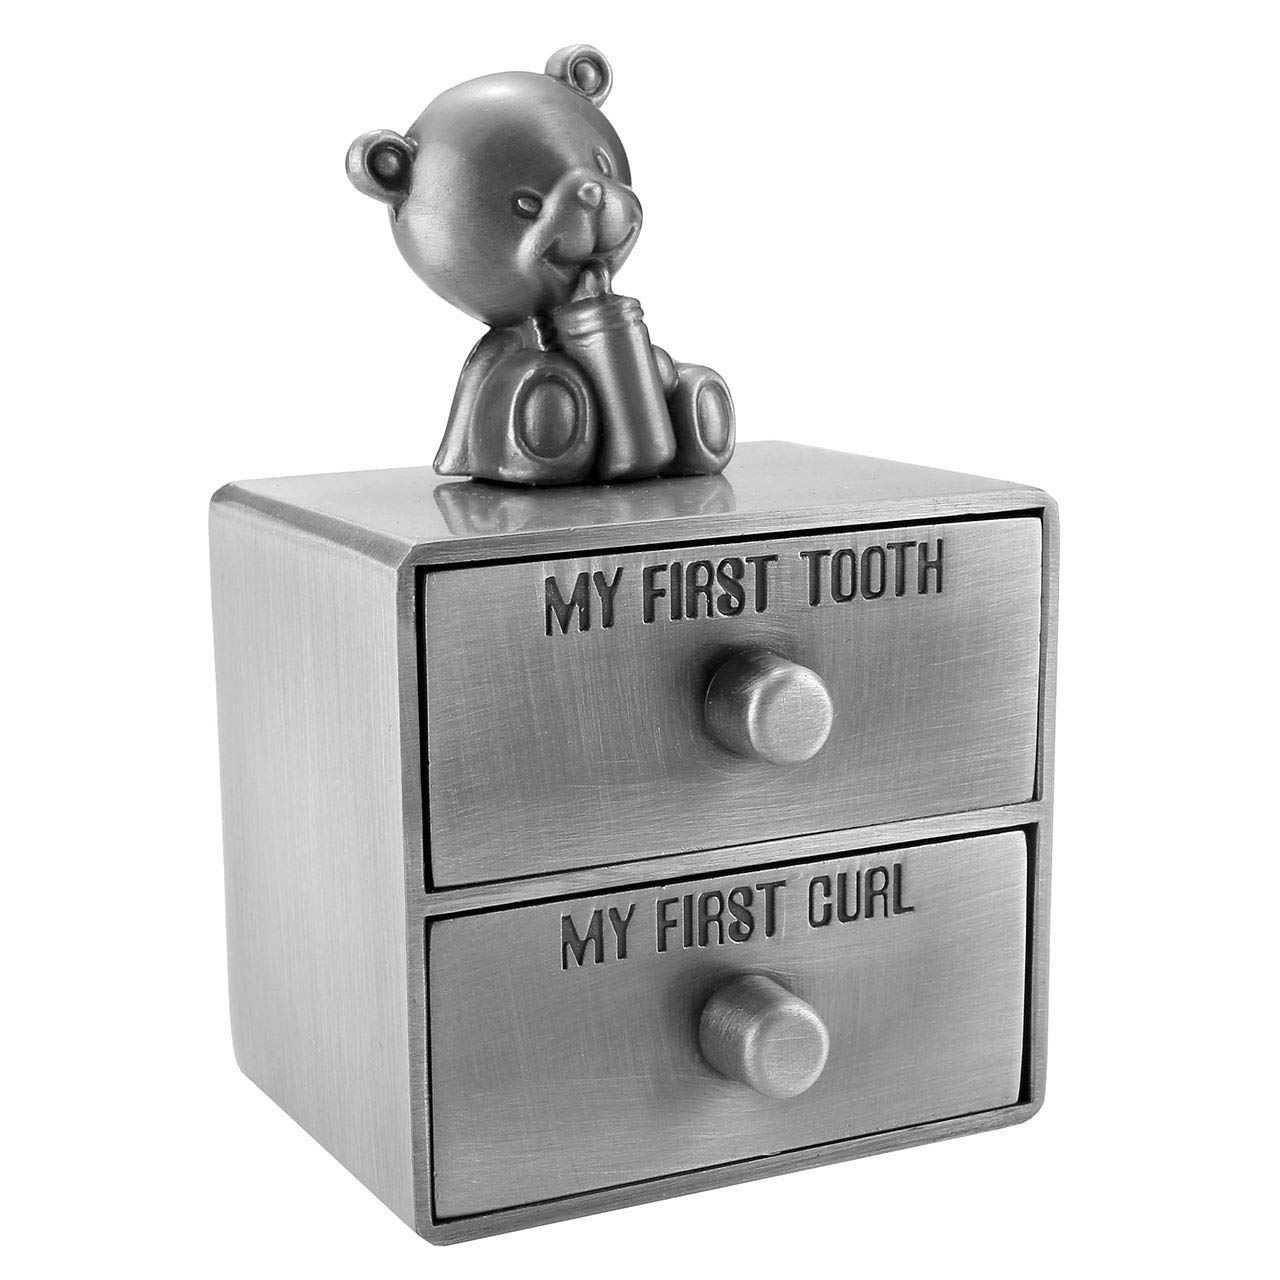 Mogoko Silver Tooth Box, Baby First Tooth and Curl Keepsake Boxes Set, Kids Teeth Fairy Holder for Boy or Girl